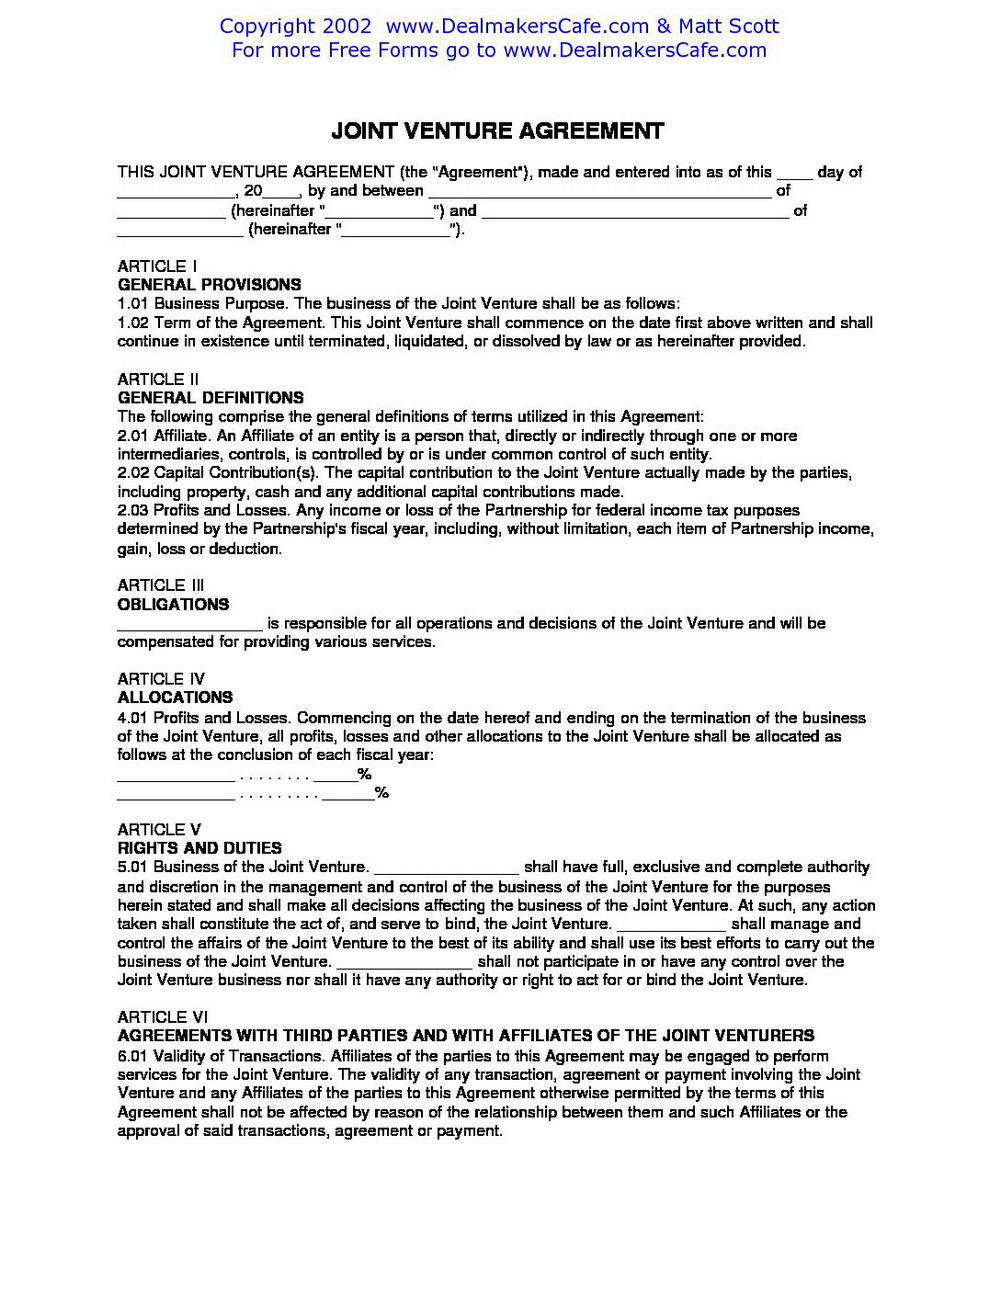 Joint Venture Agreement Template Free